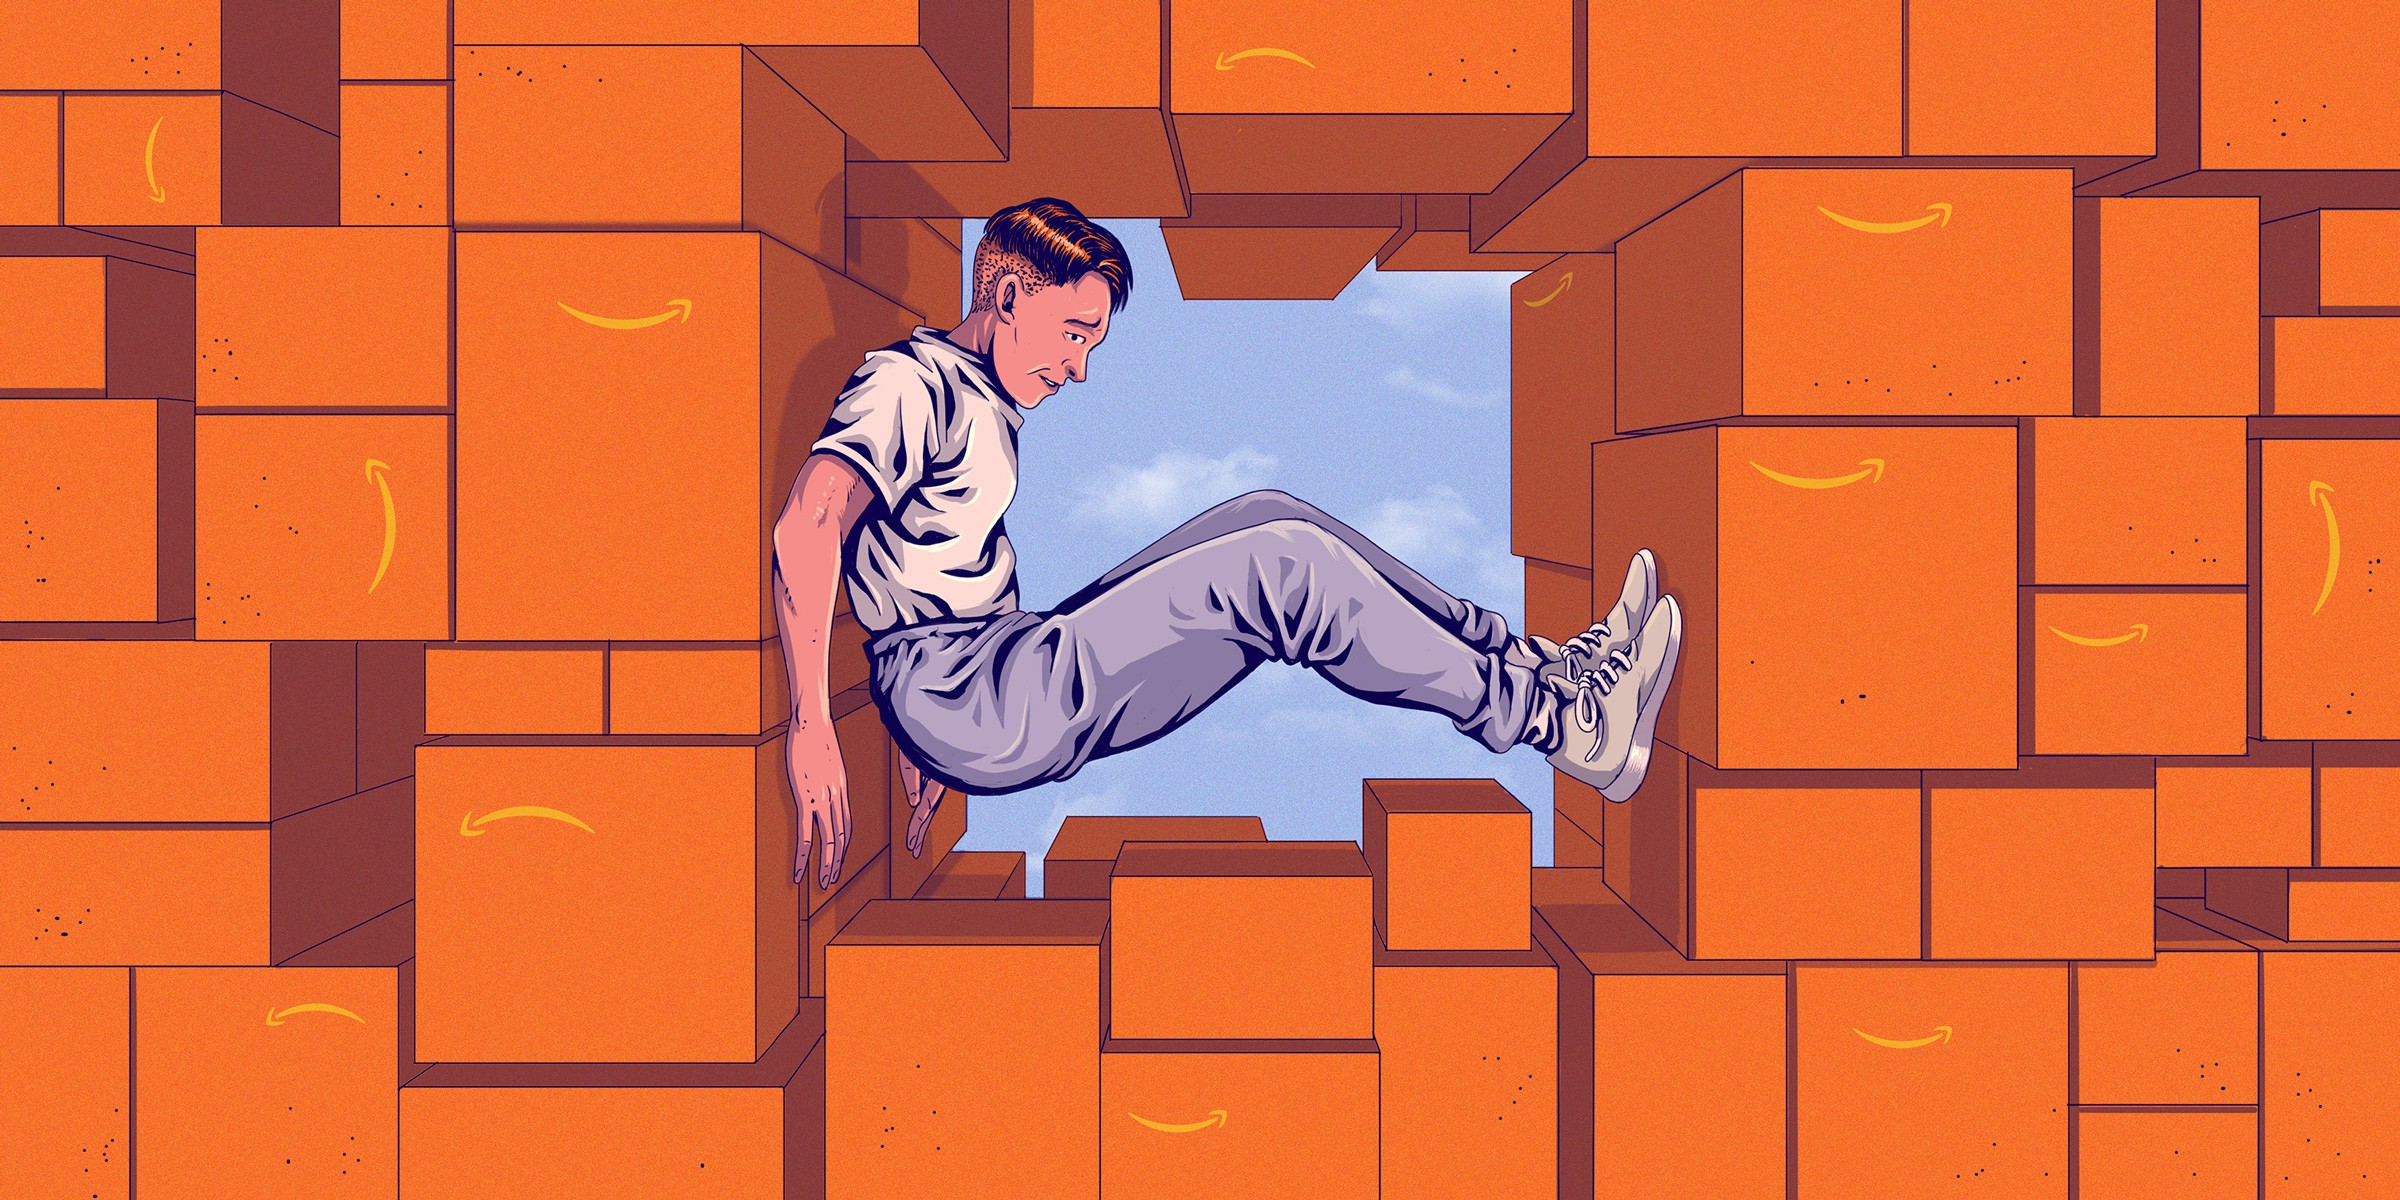 The Relentless Misery of Working Inside an Amazon Warehouse